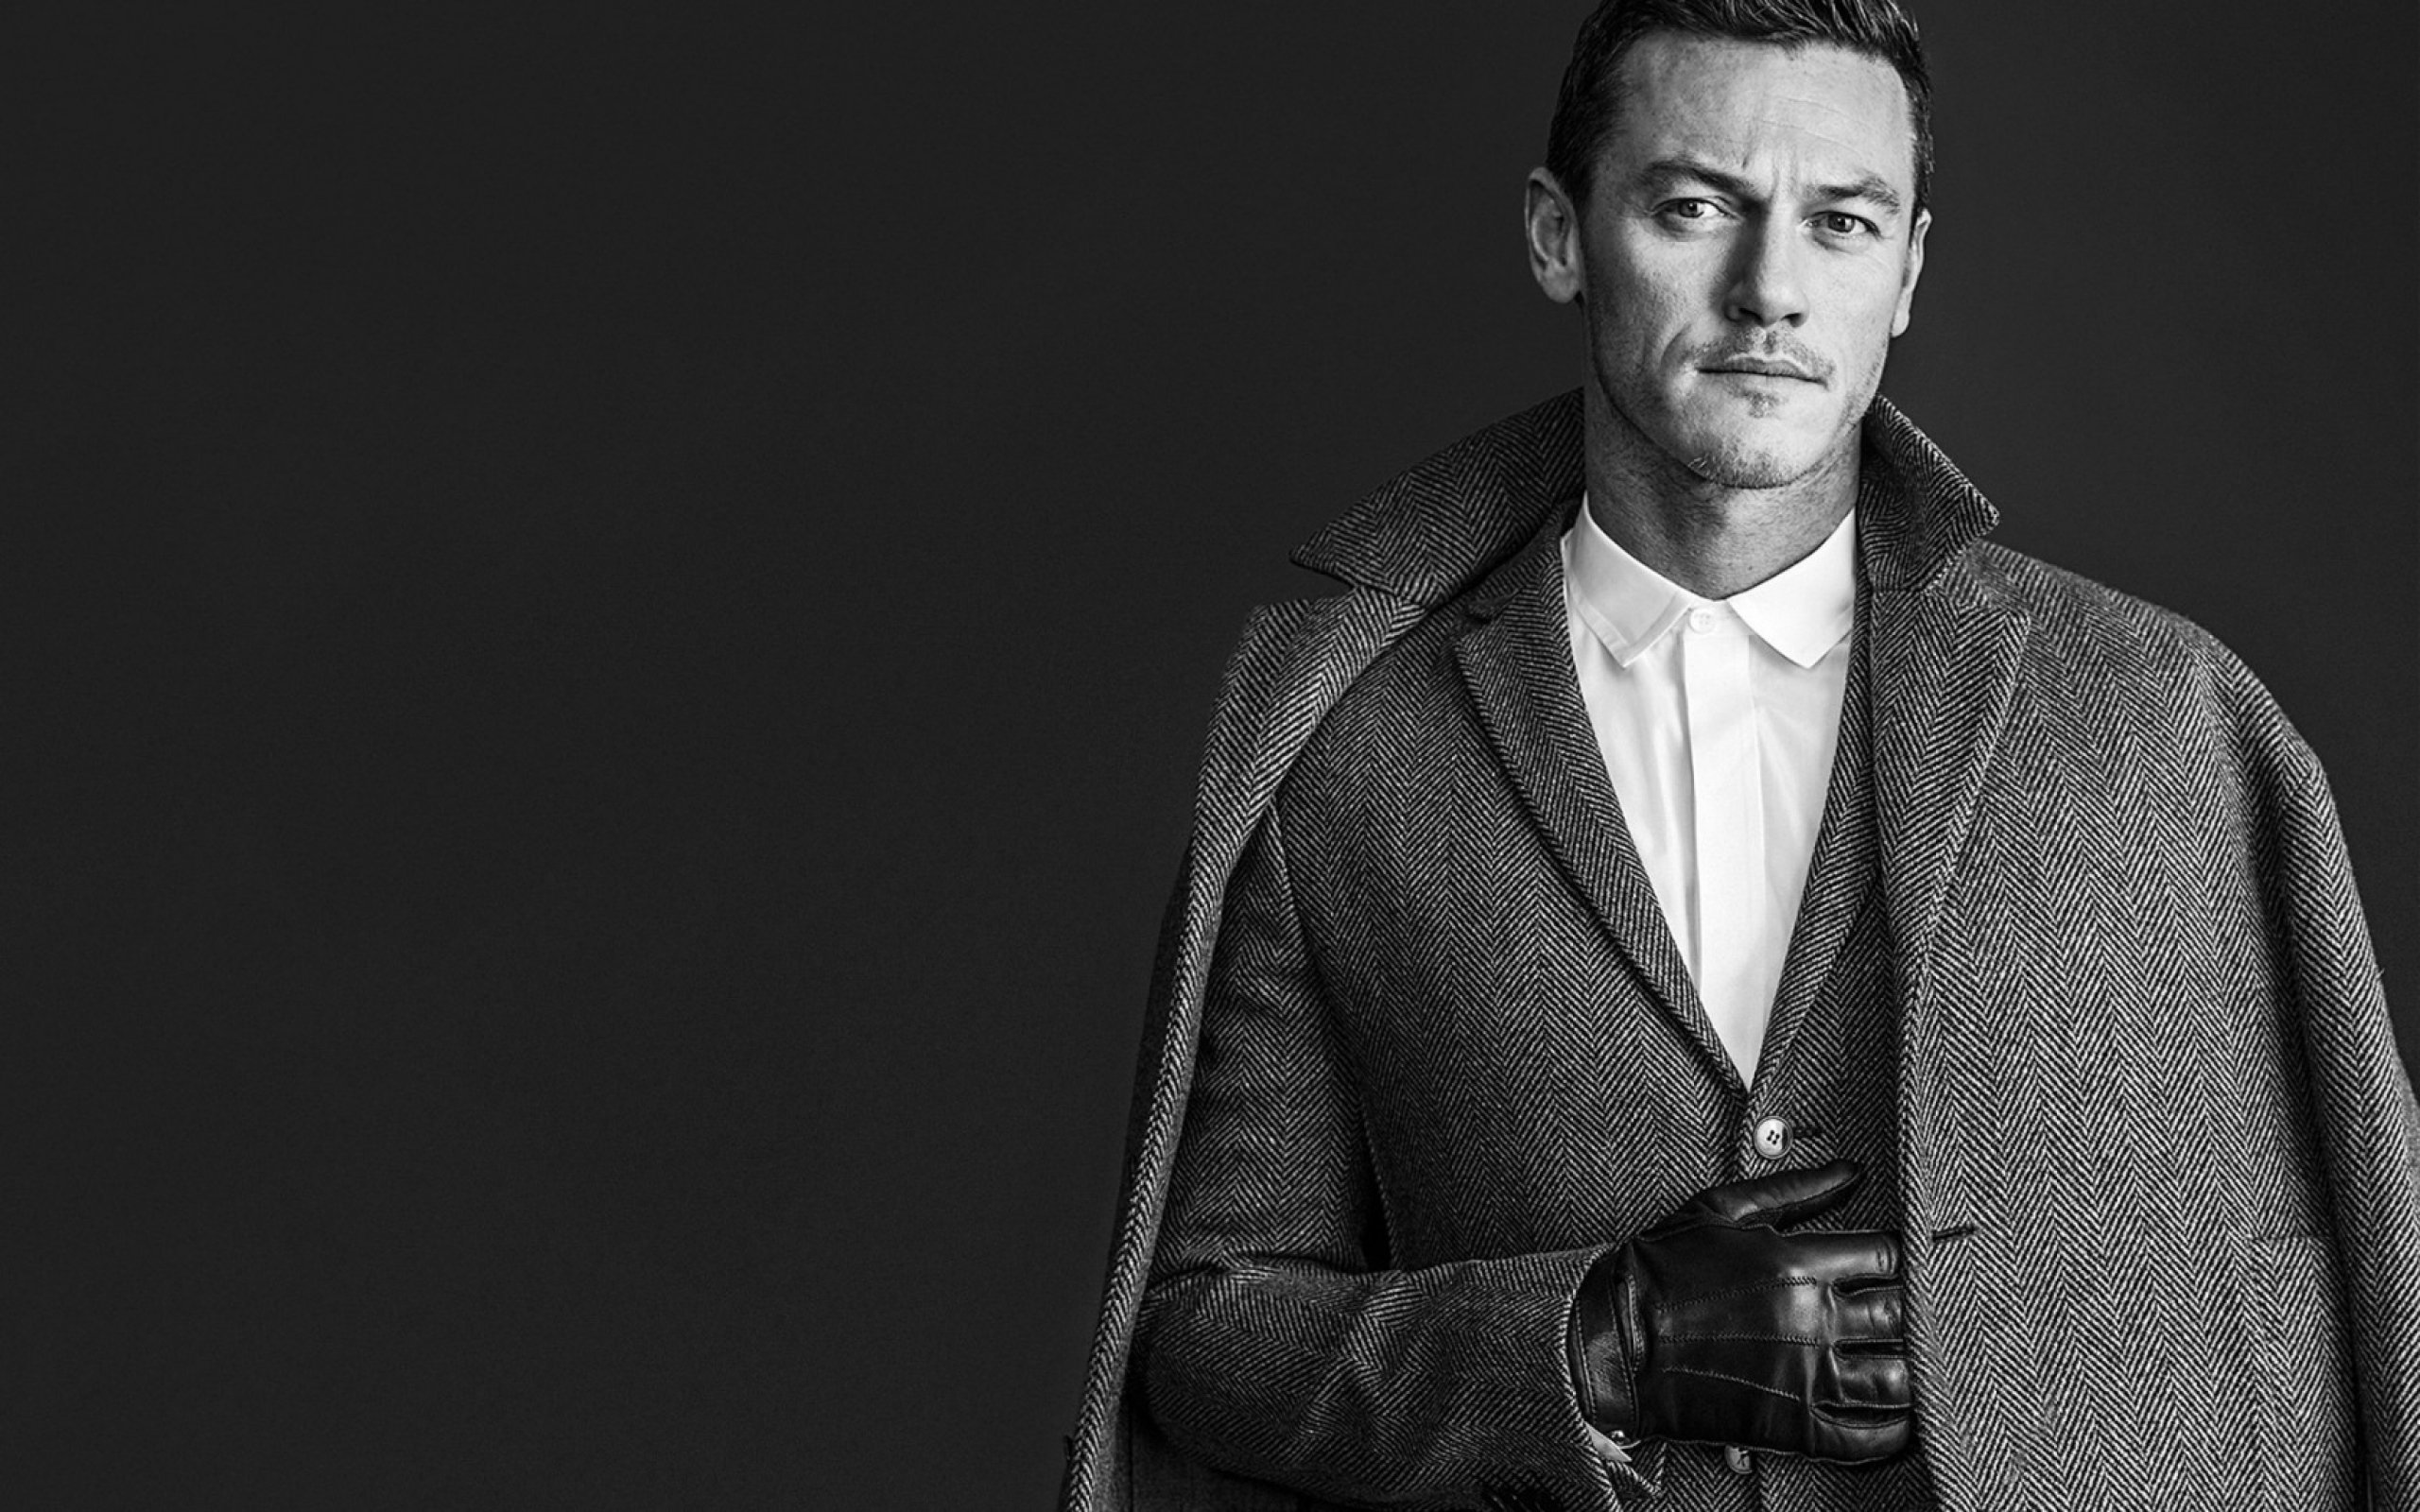 Luke Evans Wallpaper HD Desktop Backgrounds 2560x1600